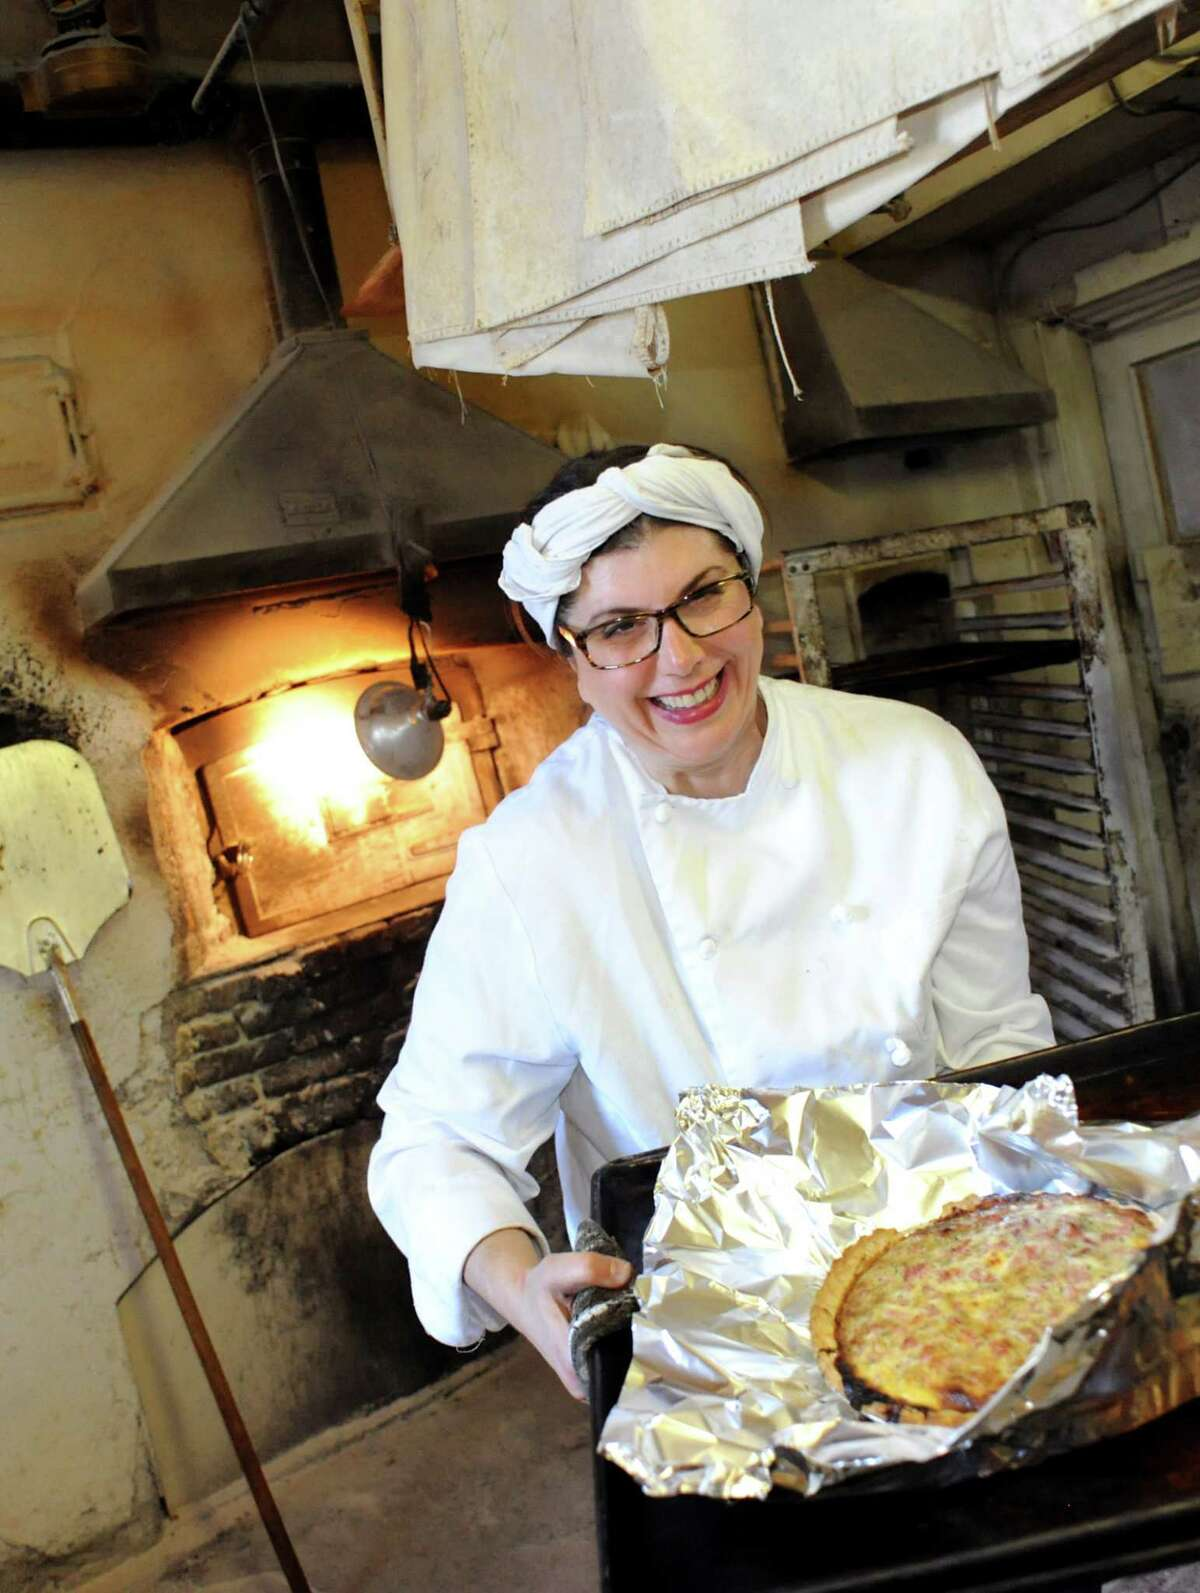 Maria Perreca Papa takes a ham pie from the oven at Perreca's Bakery in Schenectady in 2013. (Cindy Schultz/Times Union)